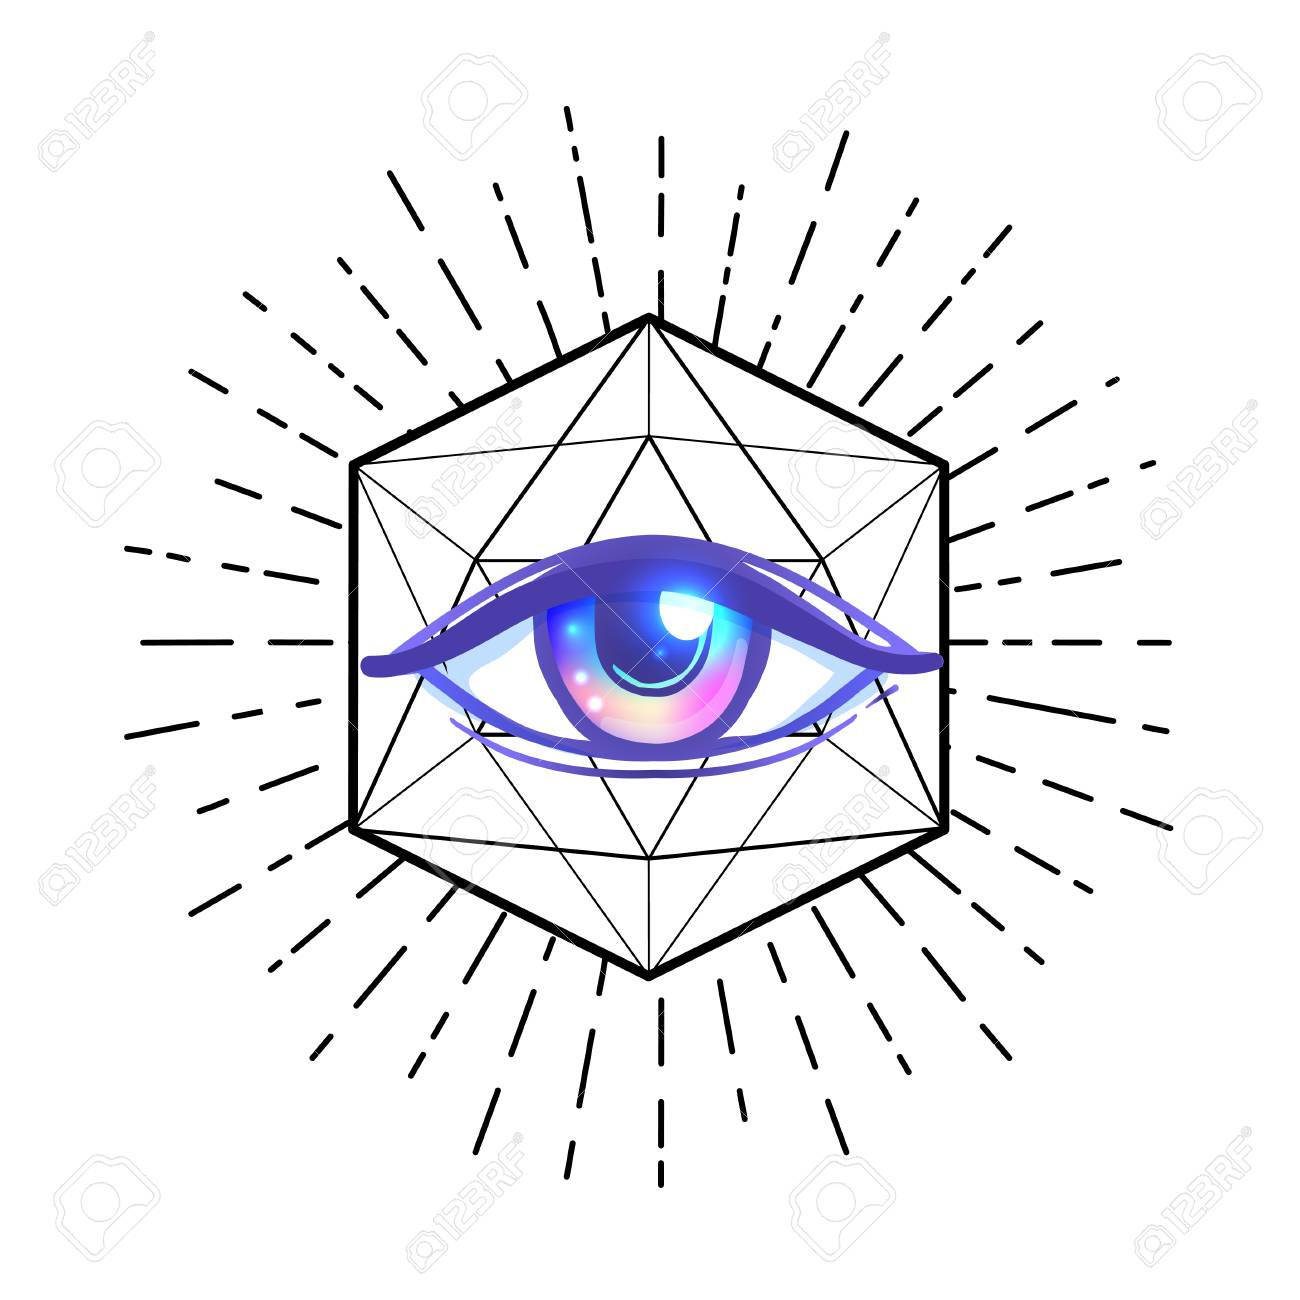 Blackwork Tattoo Flash Eye Of Providence Masonic Symbol All